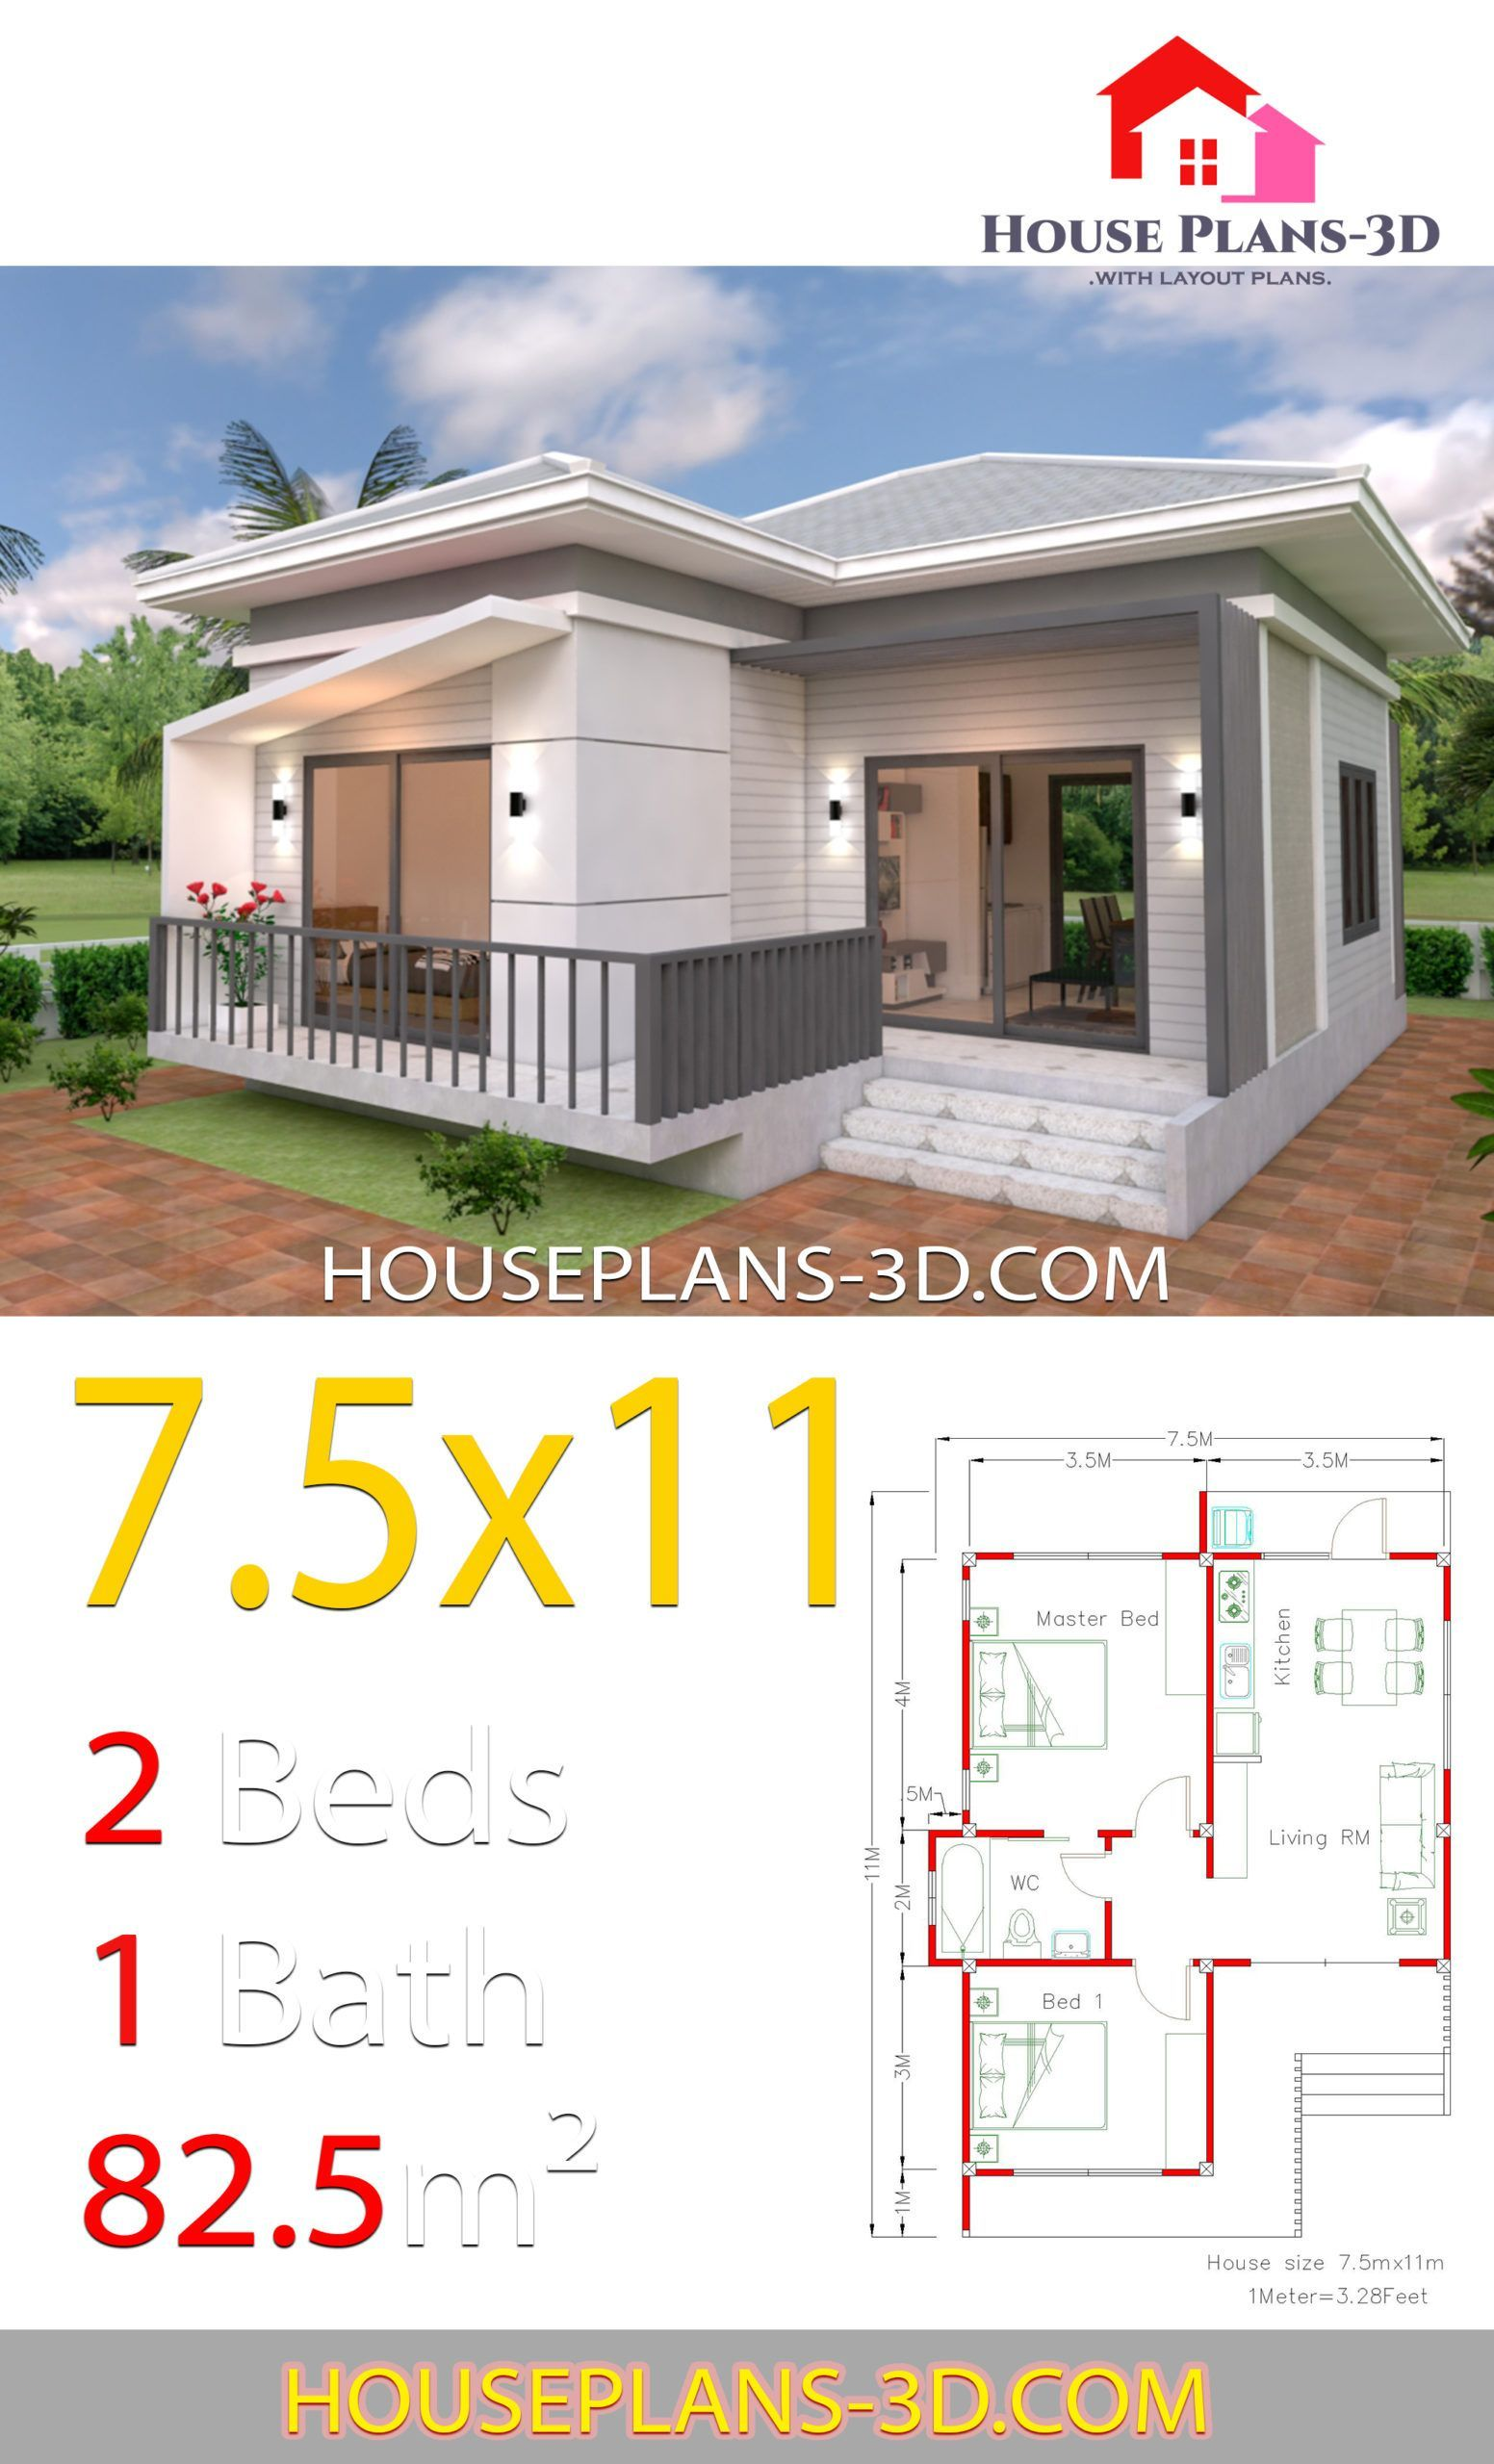 House Plans 7 5x11 With 2 Bedrooms Hip Roof In 2019 House In 2020 House Plans Small House Design Plans Bungalow House Design